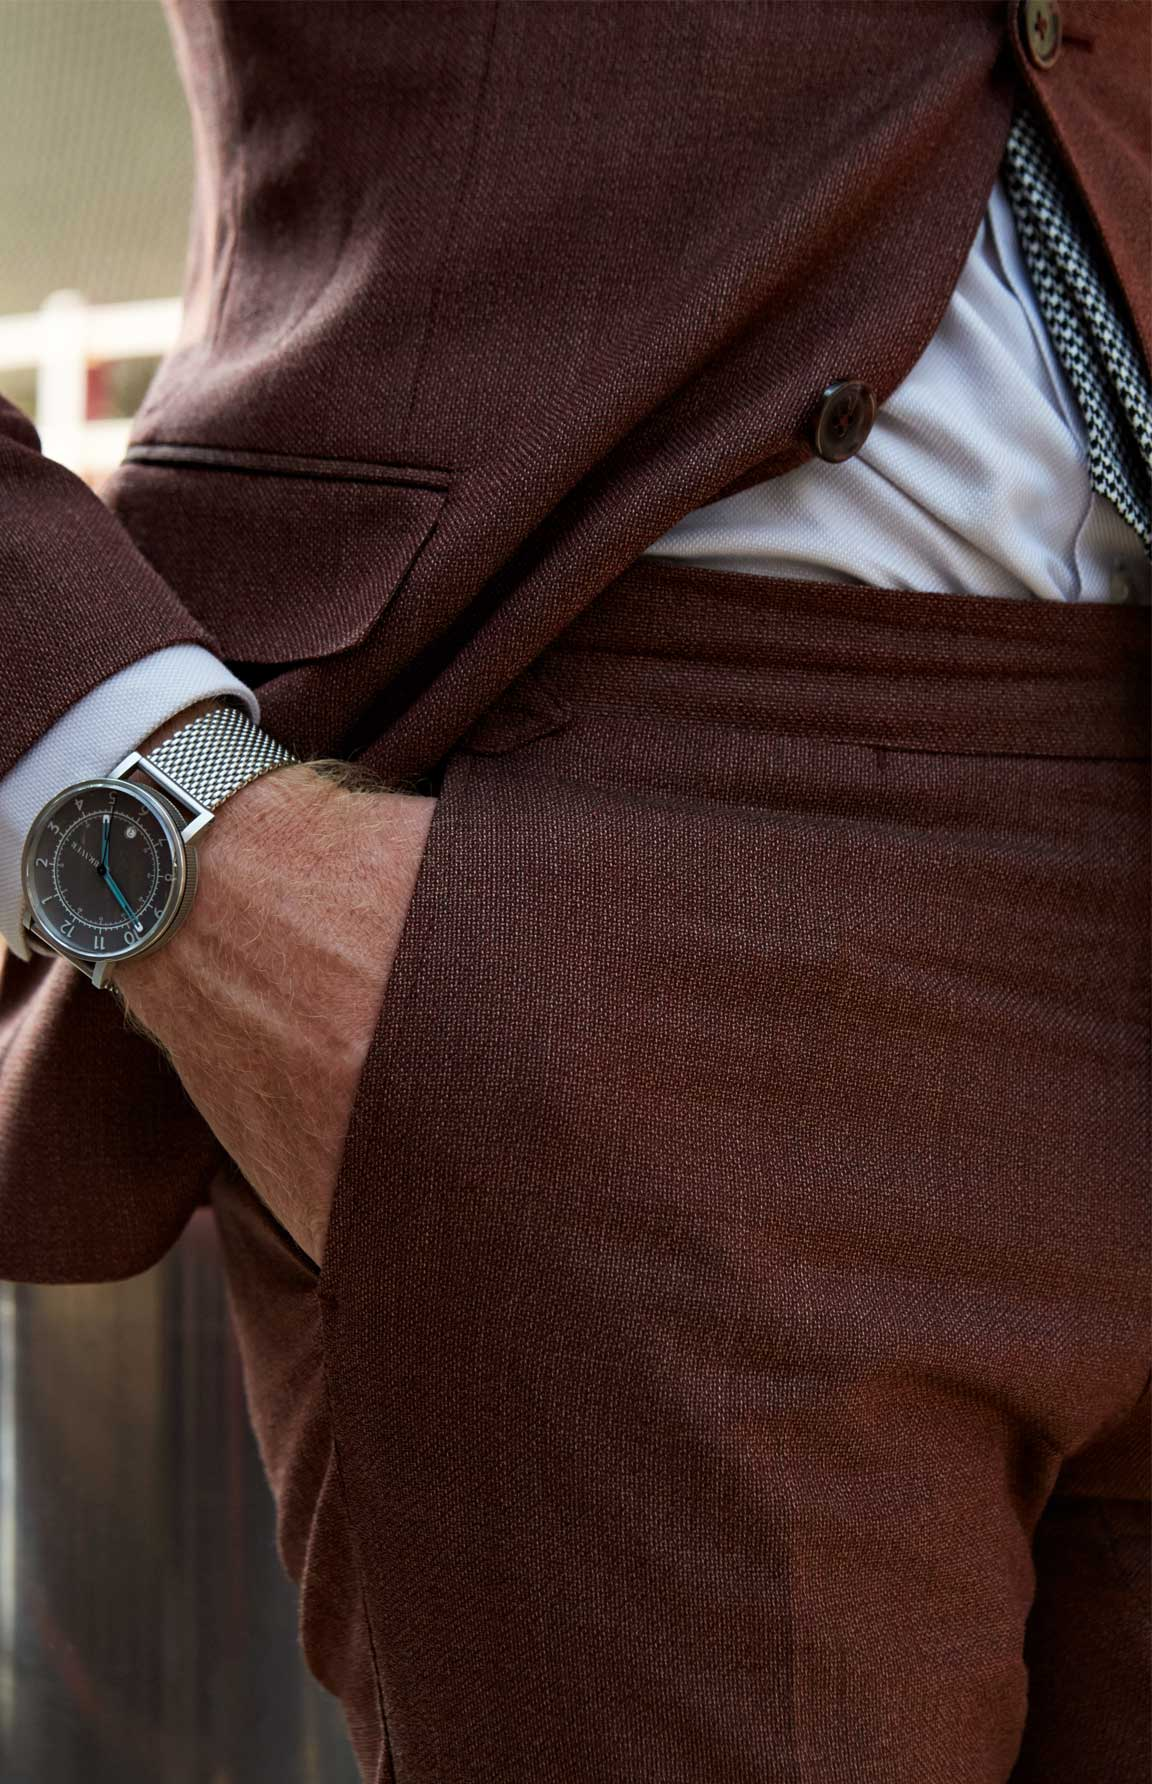 James Nord has a cool watch